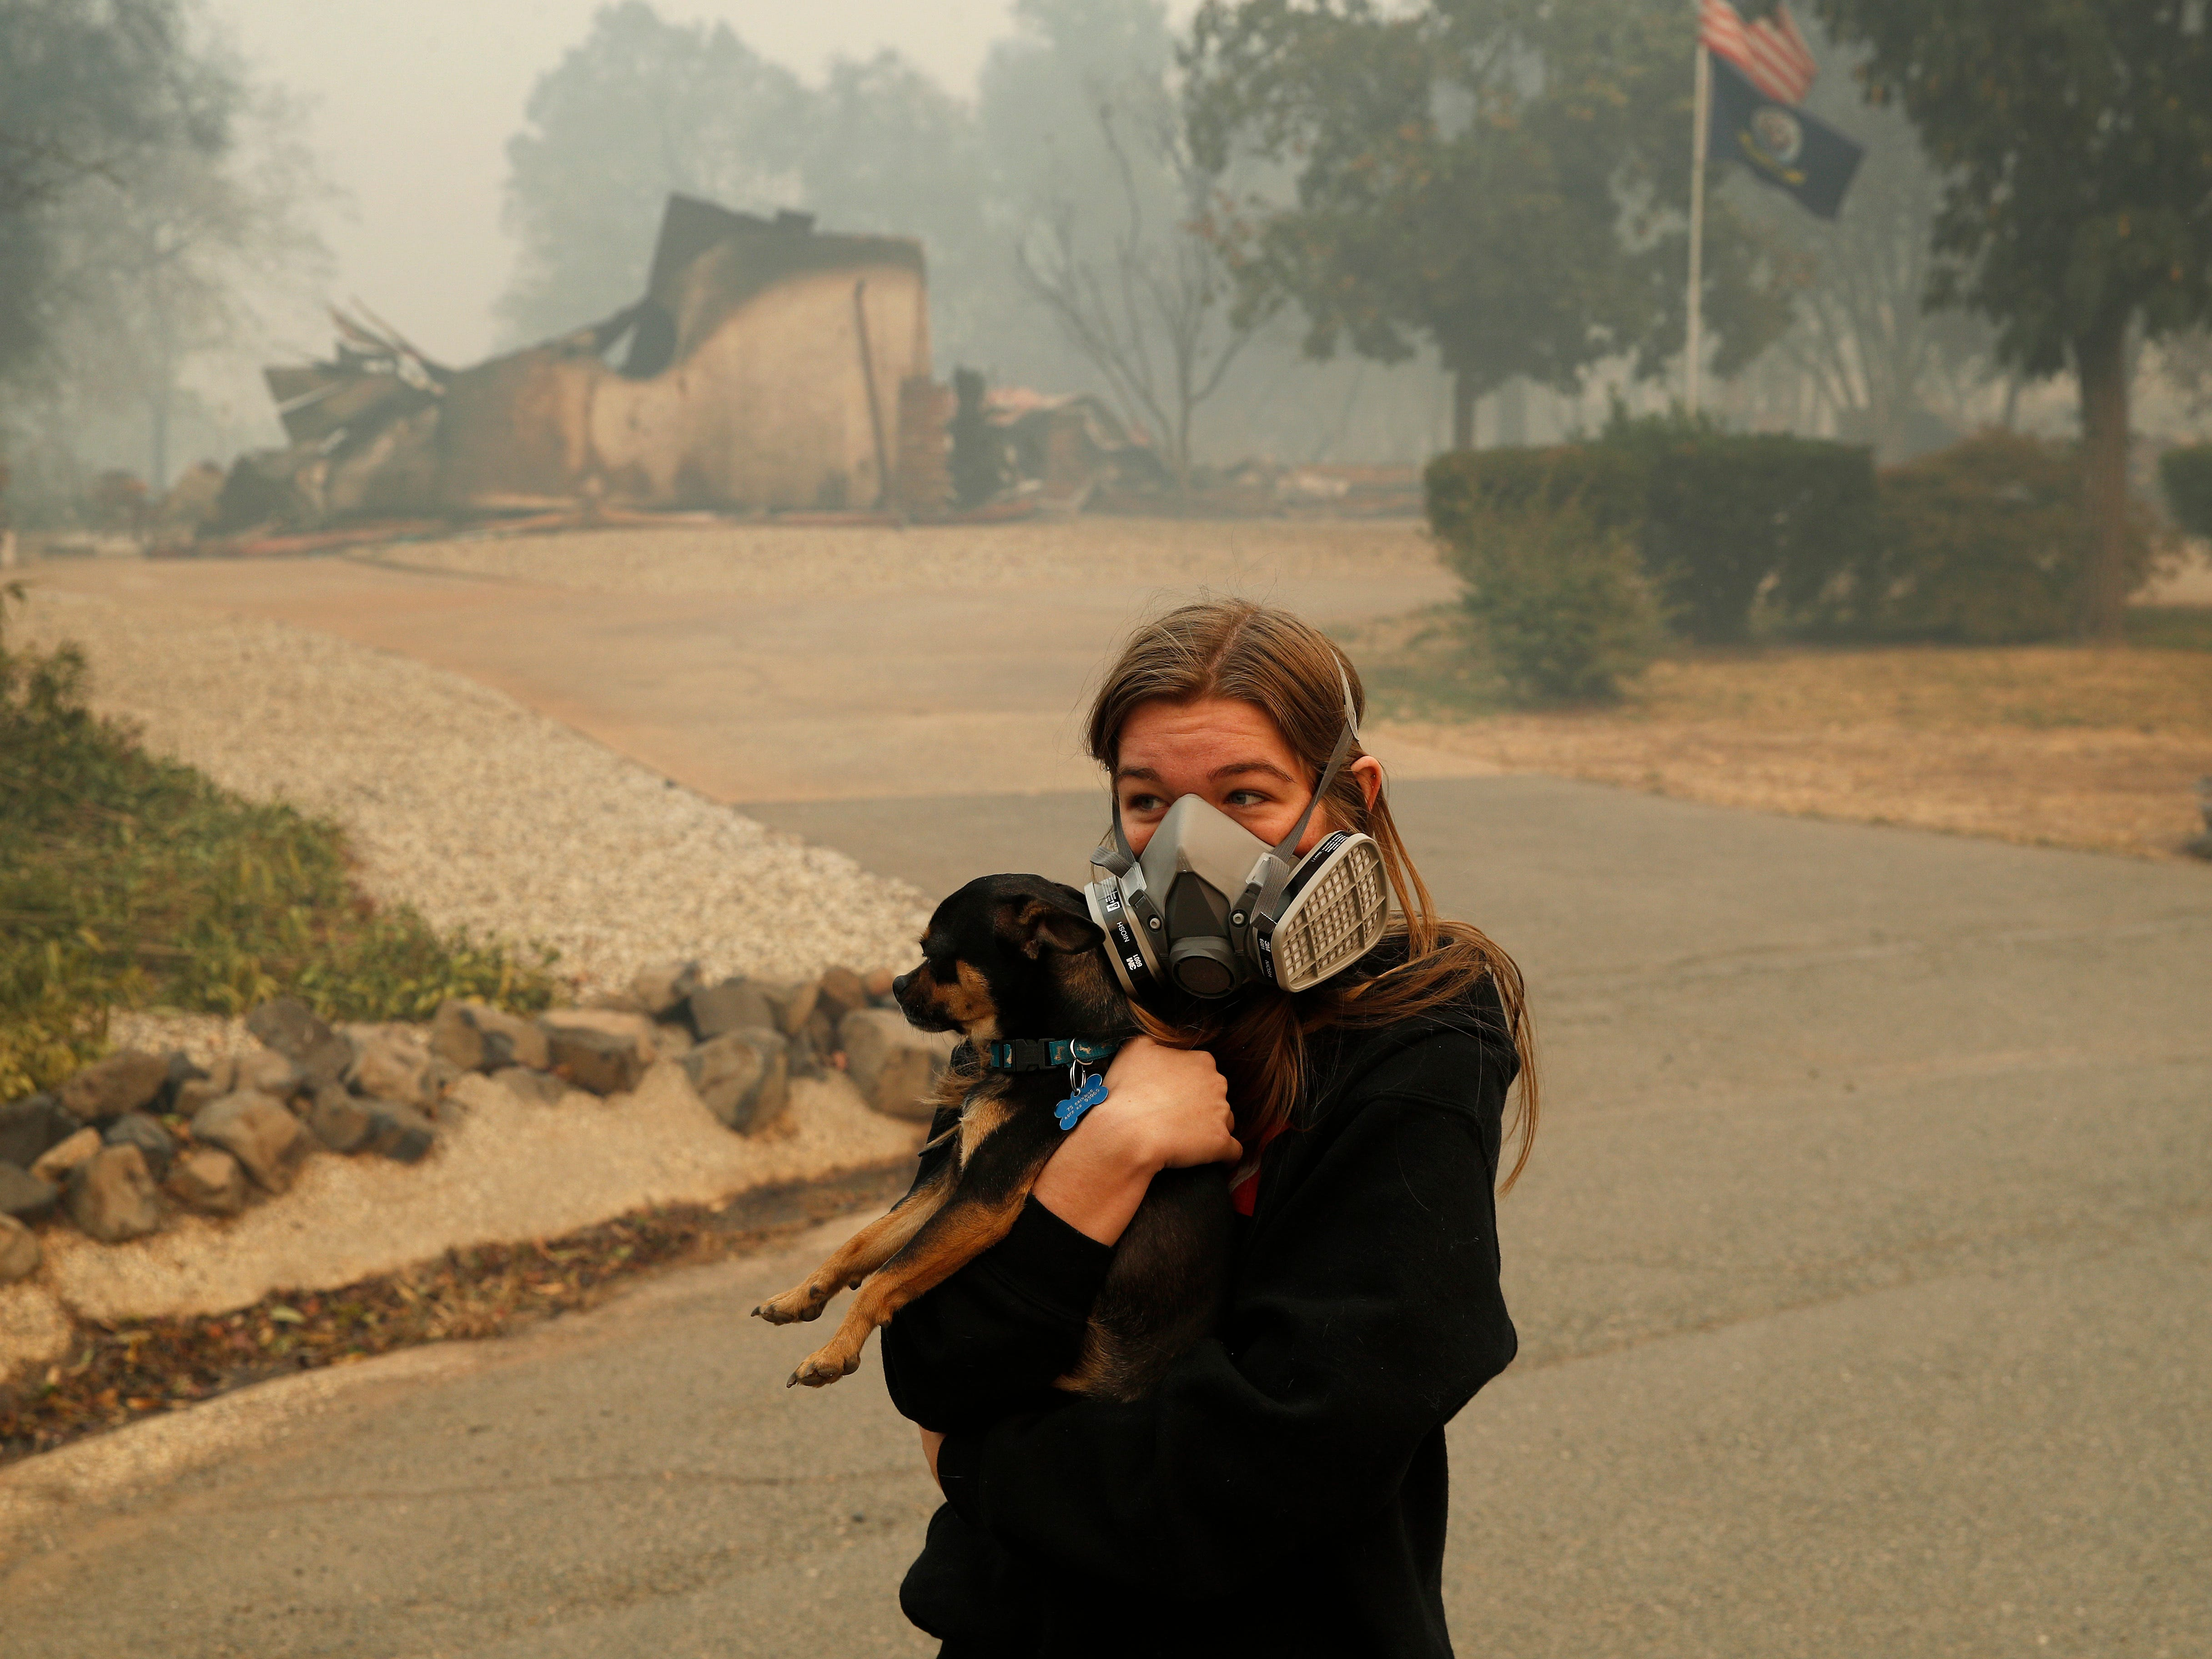 Araya Cipollini, 19,  holds on to her dog T.J. near the burned out remnants of her neighbor's home burned in the Camp Fire, Saturday, Nov. 10, 2018, in Paradise, Calif. Cipollini and her family lost their home nearby in the fire.